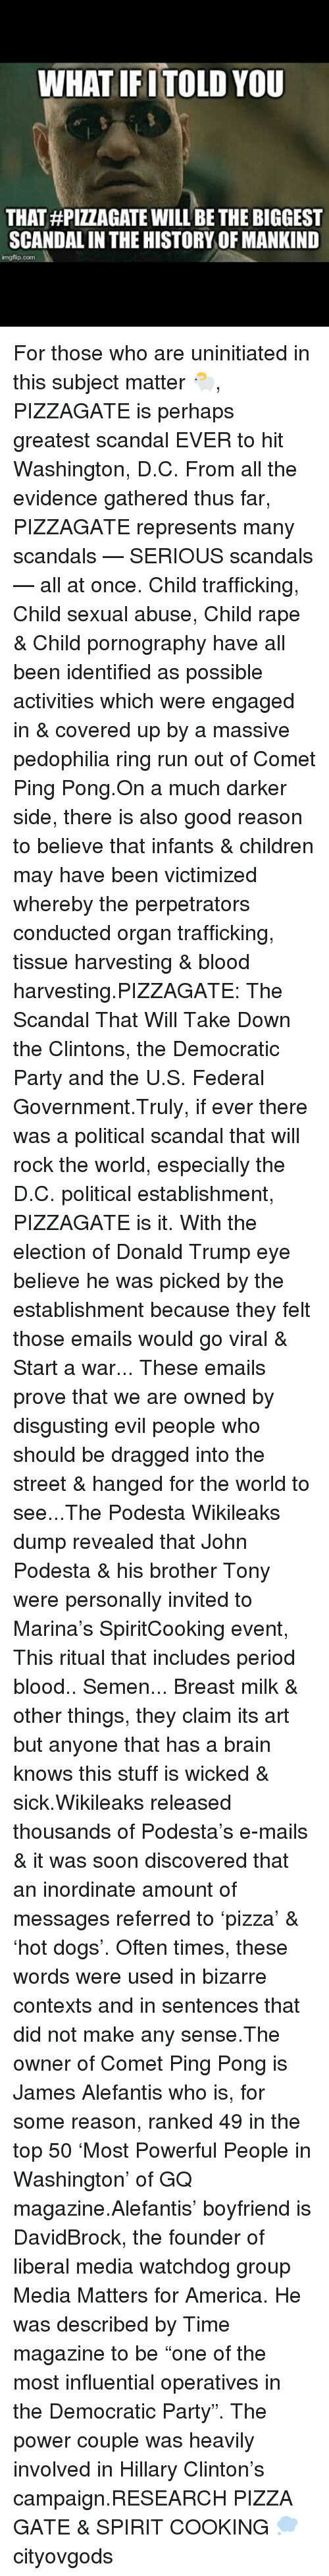 Donald Trump Eyes: WHAT IF TOLD YOU  THAT HPIZZAGATE WILL BE THE BIGGEST  SCANDALIN THE HISTORY OFMANKIND  imgflip com For those who are uninitiated in this subject matter 🐑, PIZZAGATE is perhaps greatest scandal EVER to hit Washington, D.C. From all the evidence gathered thus far, PIZZAGATE represents many scandals — SERIOUS scandals — all at once. Child trafficking, Child sexual abuse, Child rape & Child pornography have all been identified as possible activities which were engaged in & covered up by a massive pedophilia ring run out of Comet Ping Pong.On a much darker side, there is also good reason to believe that infants & children may have been victimized whereby the perpetrators conducted organ trafficking, tissue harvesting & blood harvesting.PIZZAGATE: The Scandal That Will Take Down the Clintons, the Democratic Party and the U.S. Federal Government.Truly, if ever there was a political scandal that will rock the world, especially the D.C. political establishment, PIZZAGATE is it. With the election of Donald Trump eye believe he was picked by the establishment because they felt those emails would go viral & Start a war... These emails prove that we are owned by disgusting evil people who should be dragged into the street & hanged for the world to see...The Podesta Wikileaks dump revealed that John Podesta & his brother Tony were personally invited to Marina's SpiritCooking event, This ritual that includes period blood.. Semen... Breast milk & other things, they claim its art but anyone that has a brain knows this stuff is wicked & sick.Wikileaks released thousands of Podesta's e-mails & it was soon discovered that an inordinate amount of messages referred to 'pizza' & 'hot dogs'. Often times, these words were used in bizarre contexts and in sentences that did not make any sense.The owner of Comet Ping Pong is James Alefantis who is, for some reason, ranked 49 in the top 50 'Most Powerful People in Washington' of GQ magazine.Alefantis' boyfriend is DavidBrock